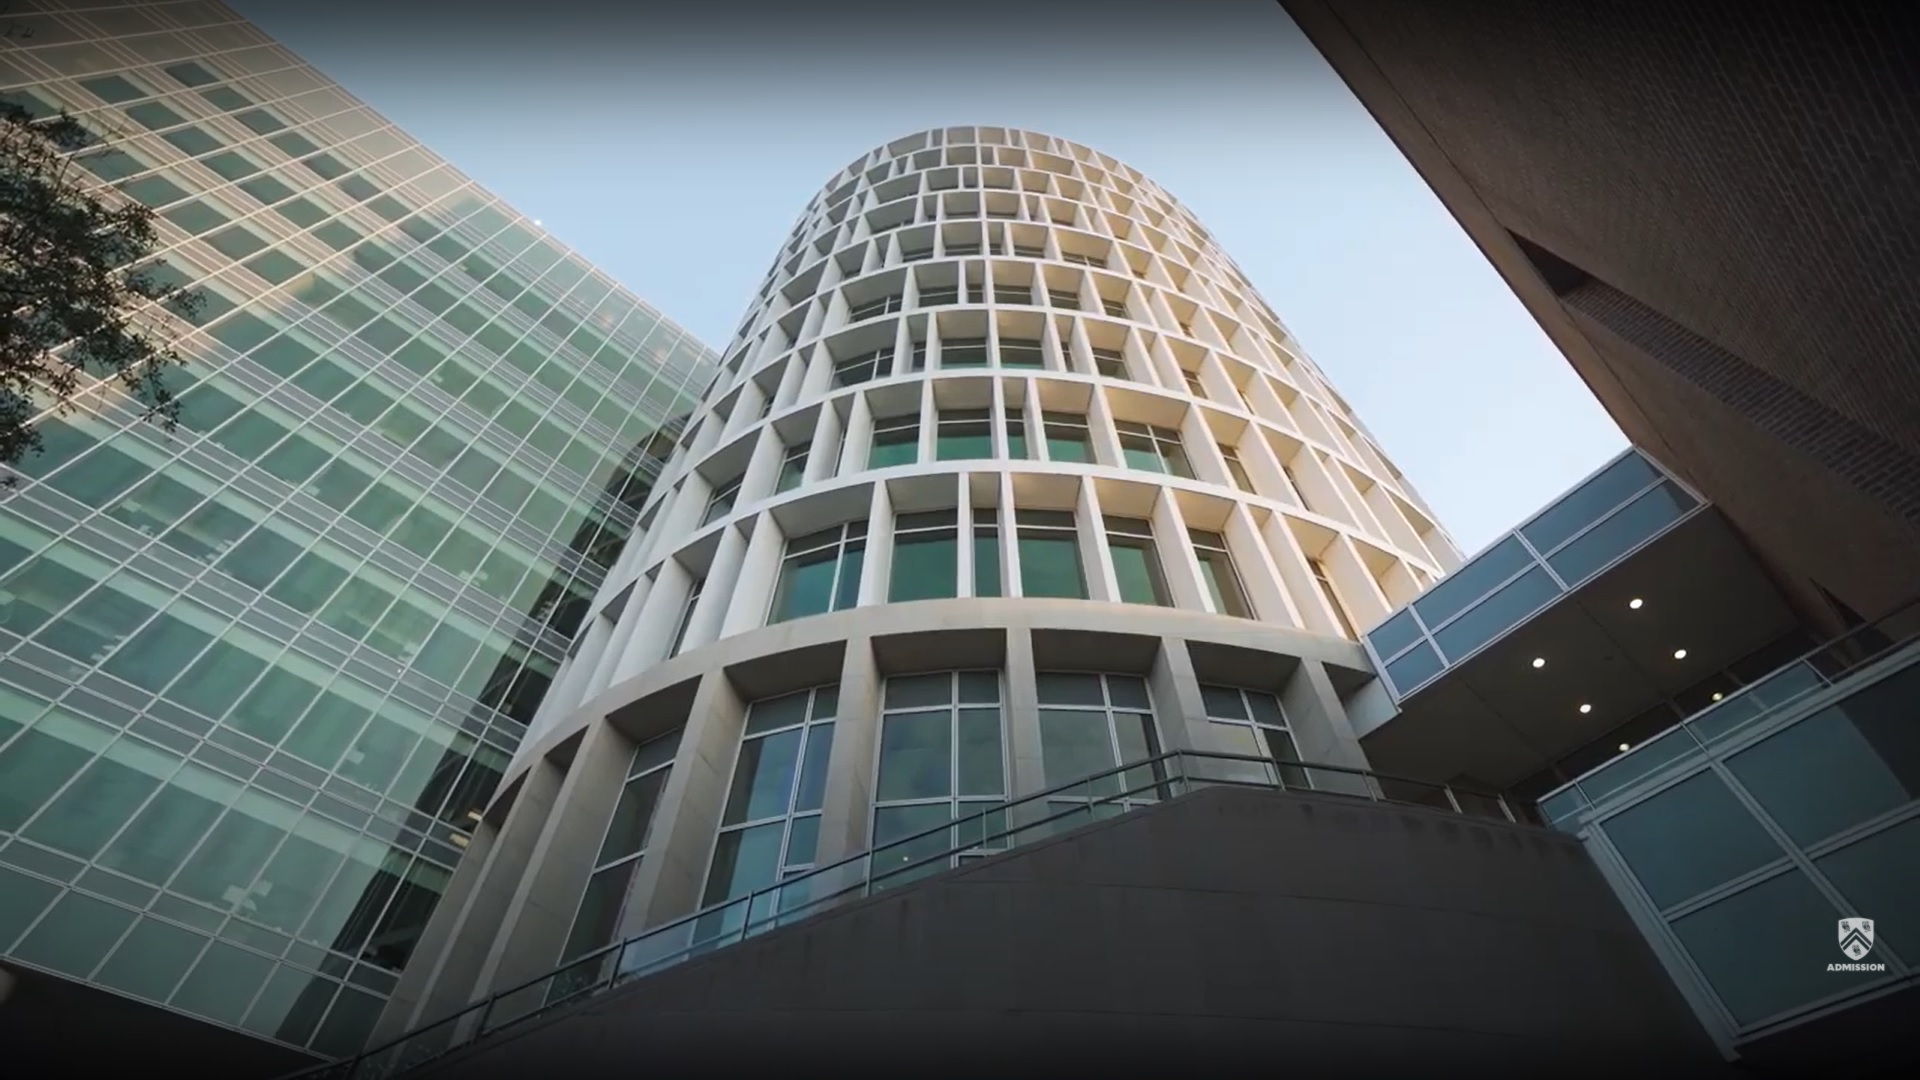 Picture from the ground looking up at the Bioscience Research Collaborative building.